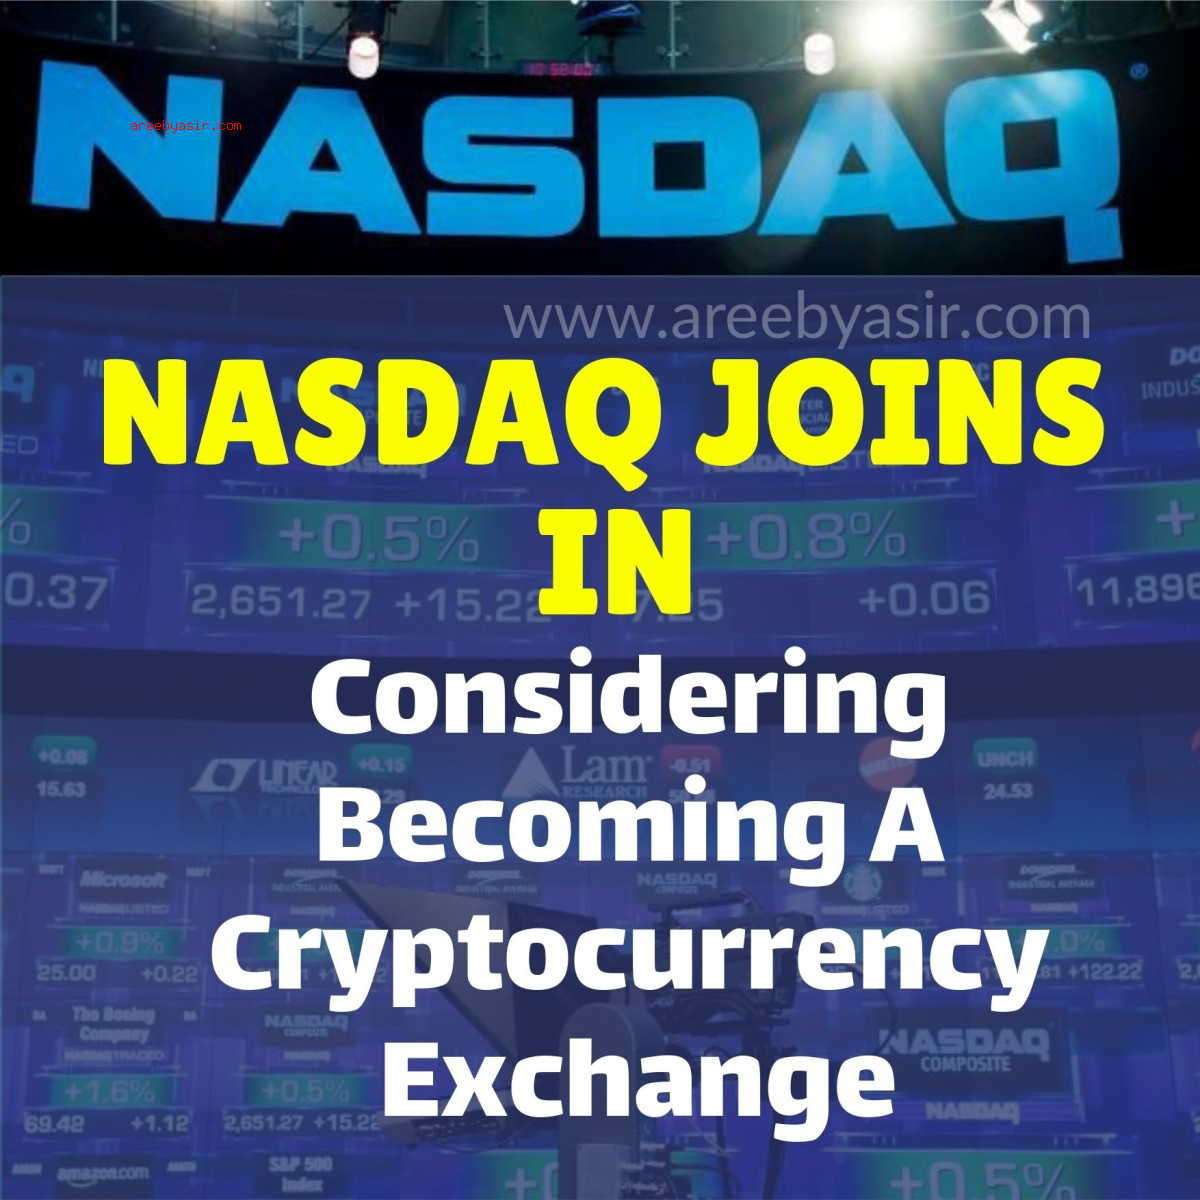 Nasdaq Plans To Become Cryptocurrency Exchange